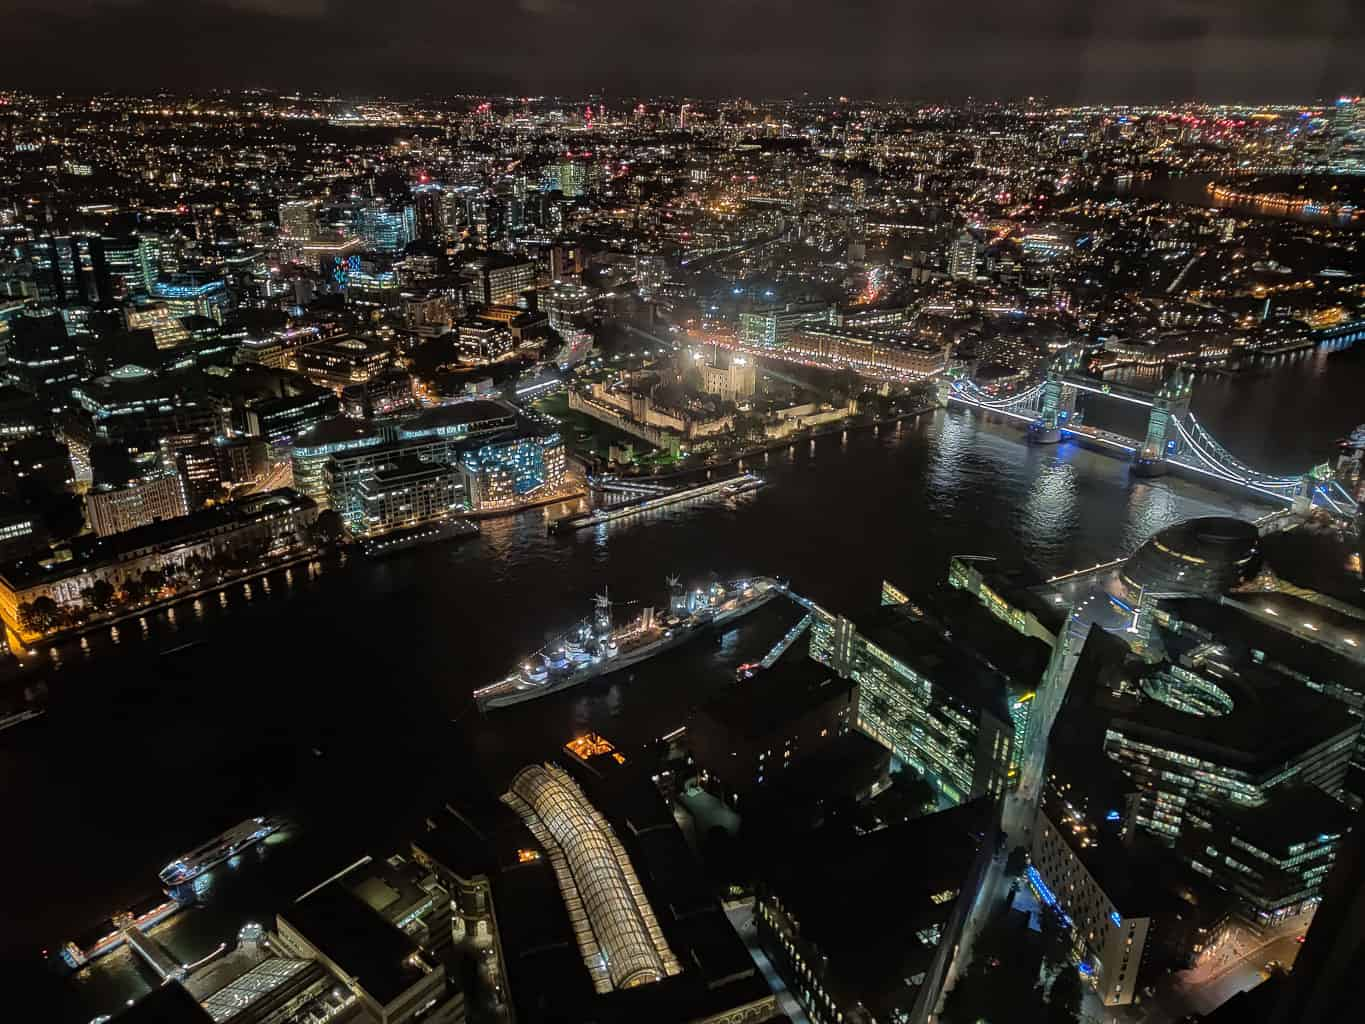 The Shard has one of the best views of London